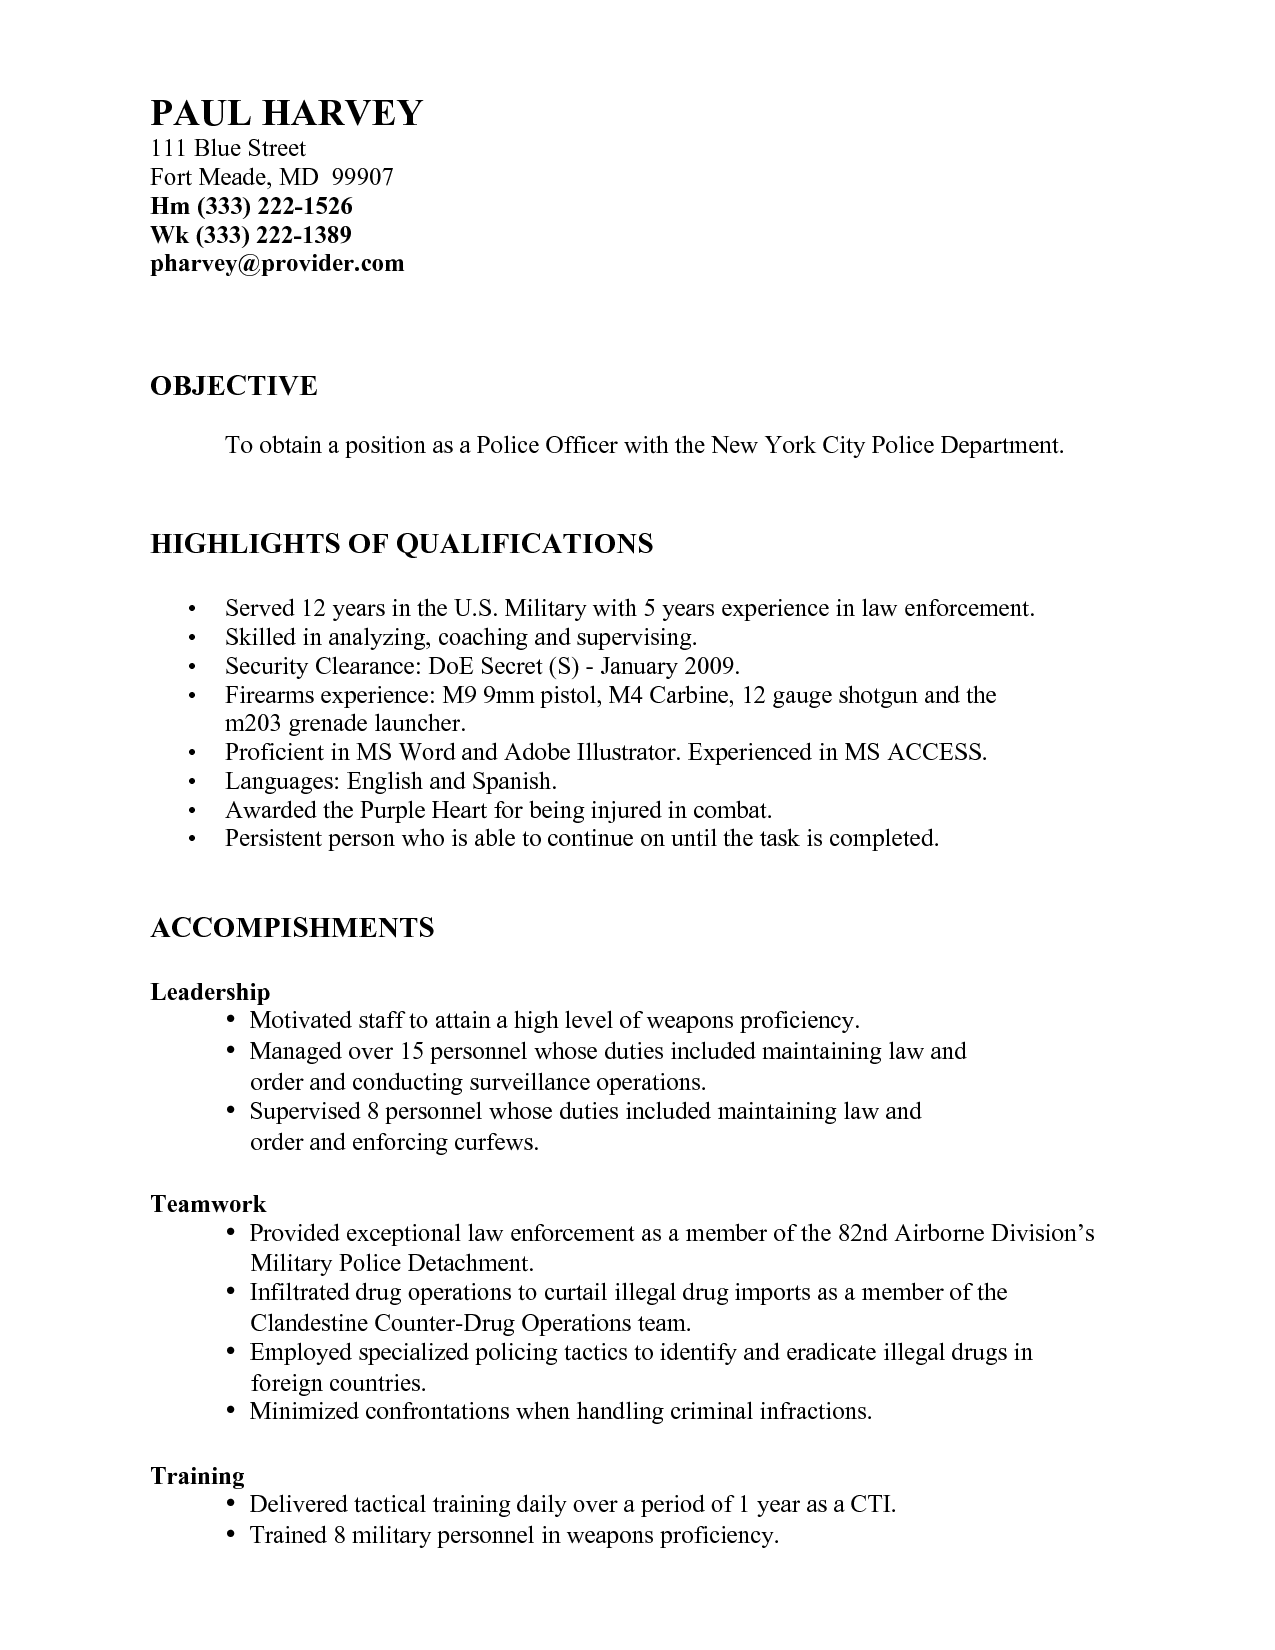 Teacher Resume Objective Statement Pin By Jobresume On Resume Career Termplate Free